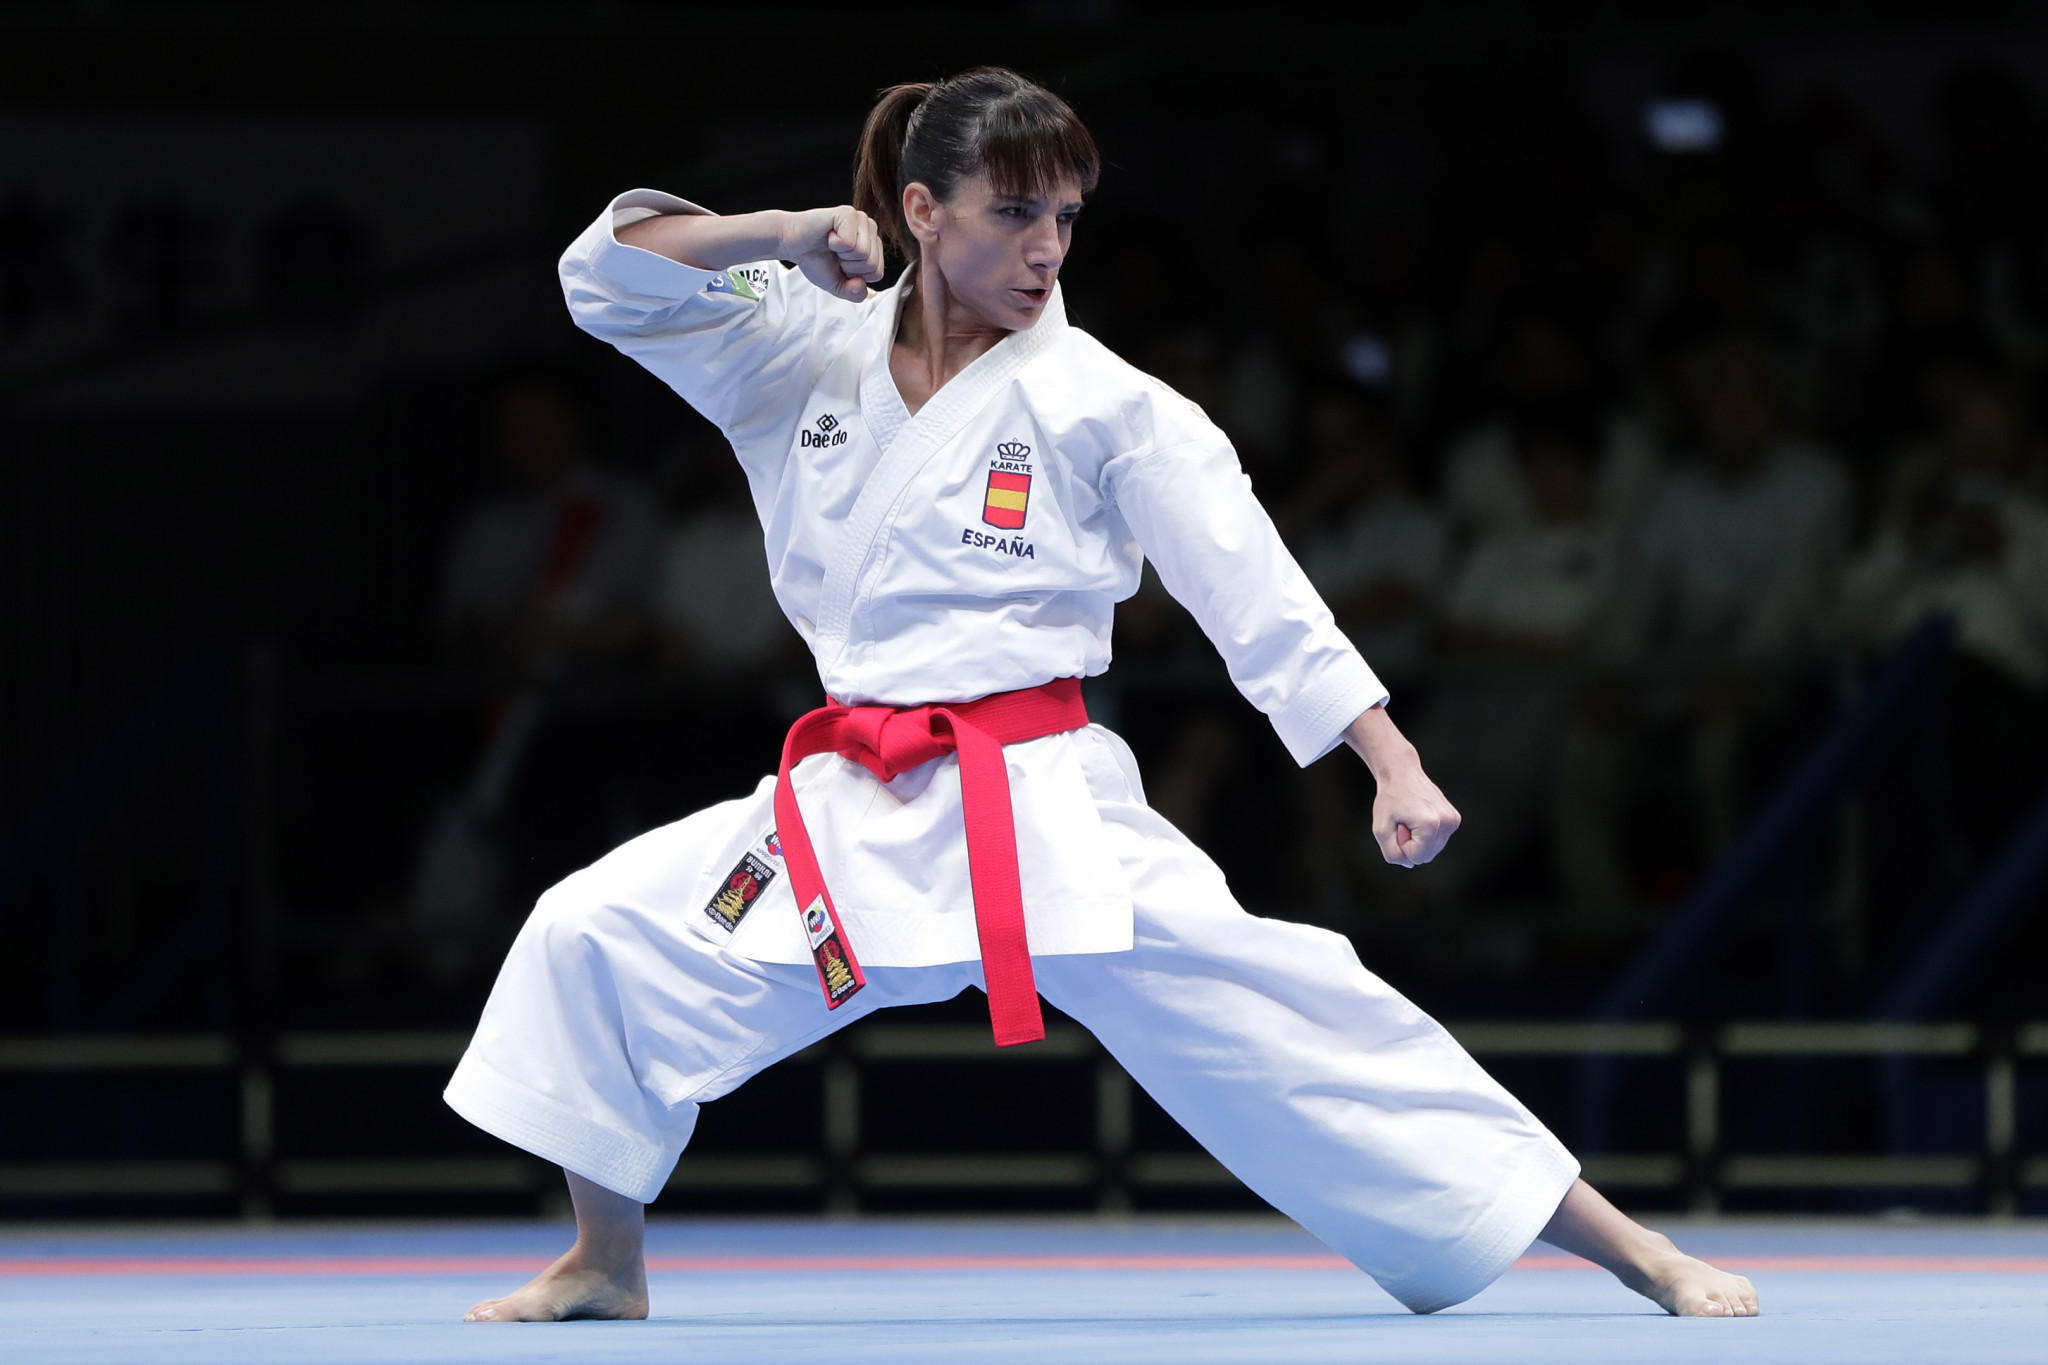 Strong field to assemble in karate kata at ANOC World Beach Games